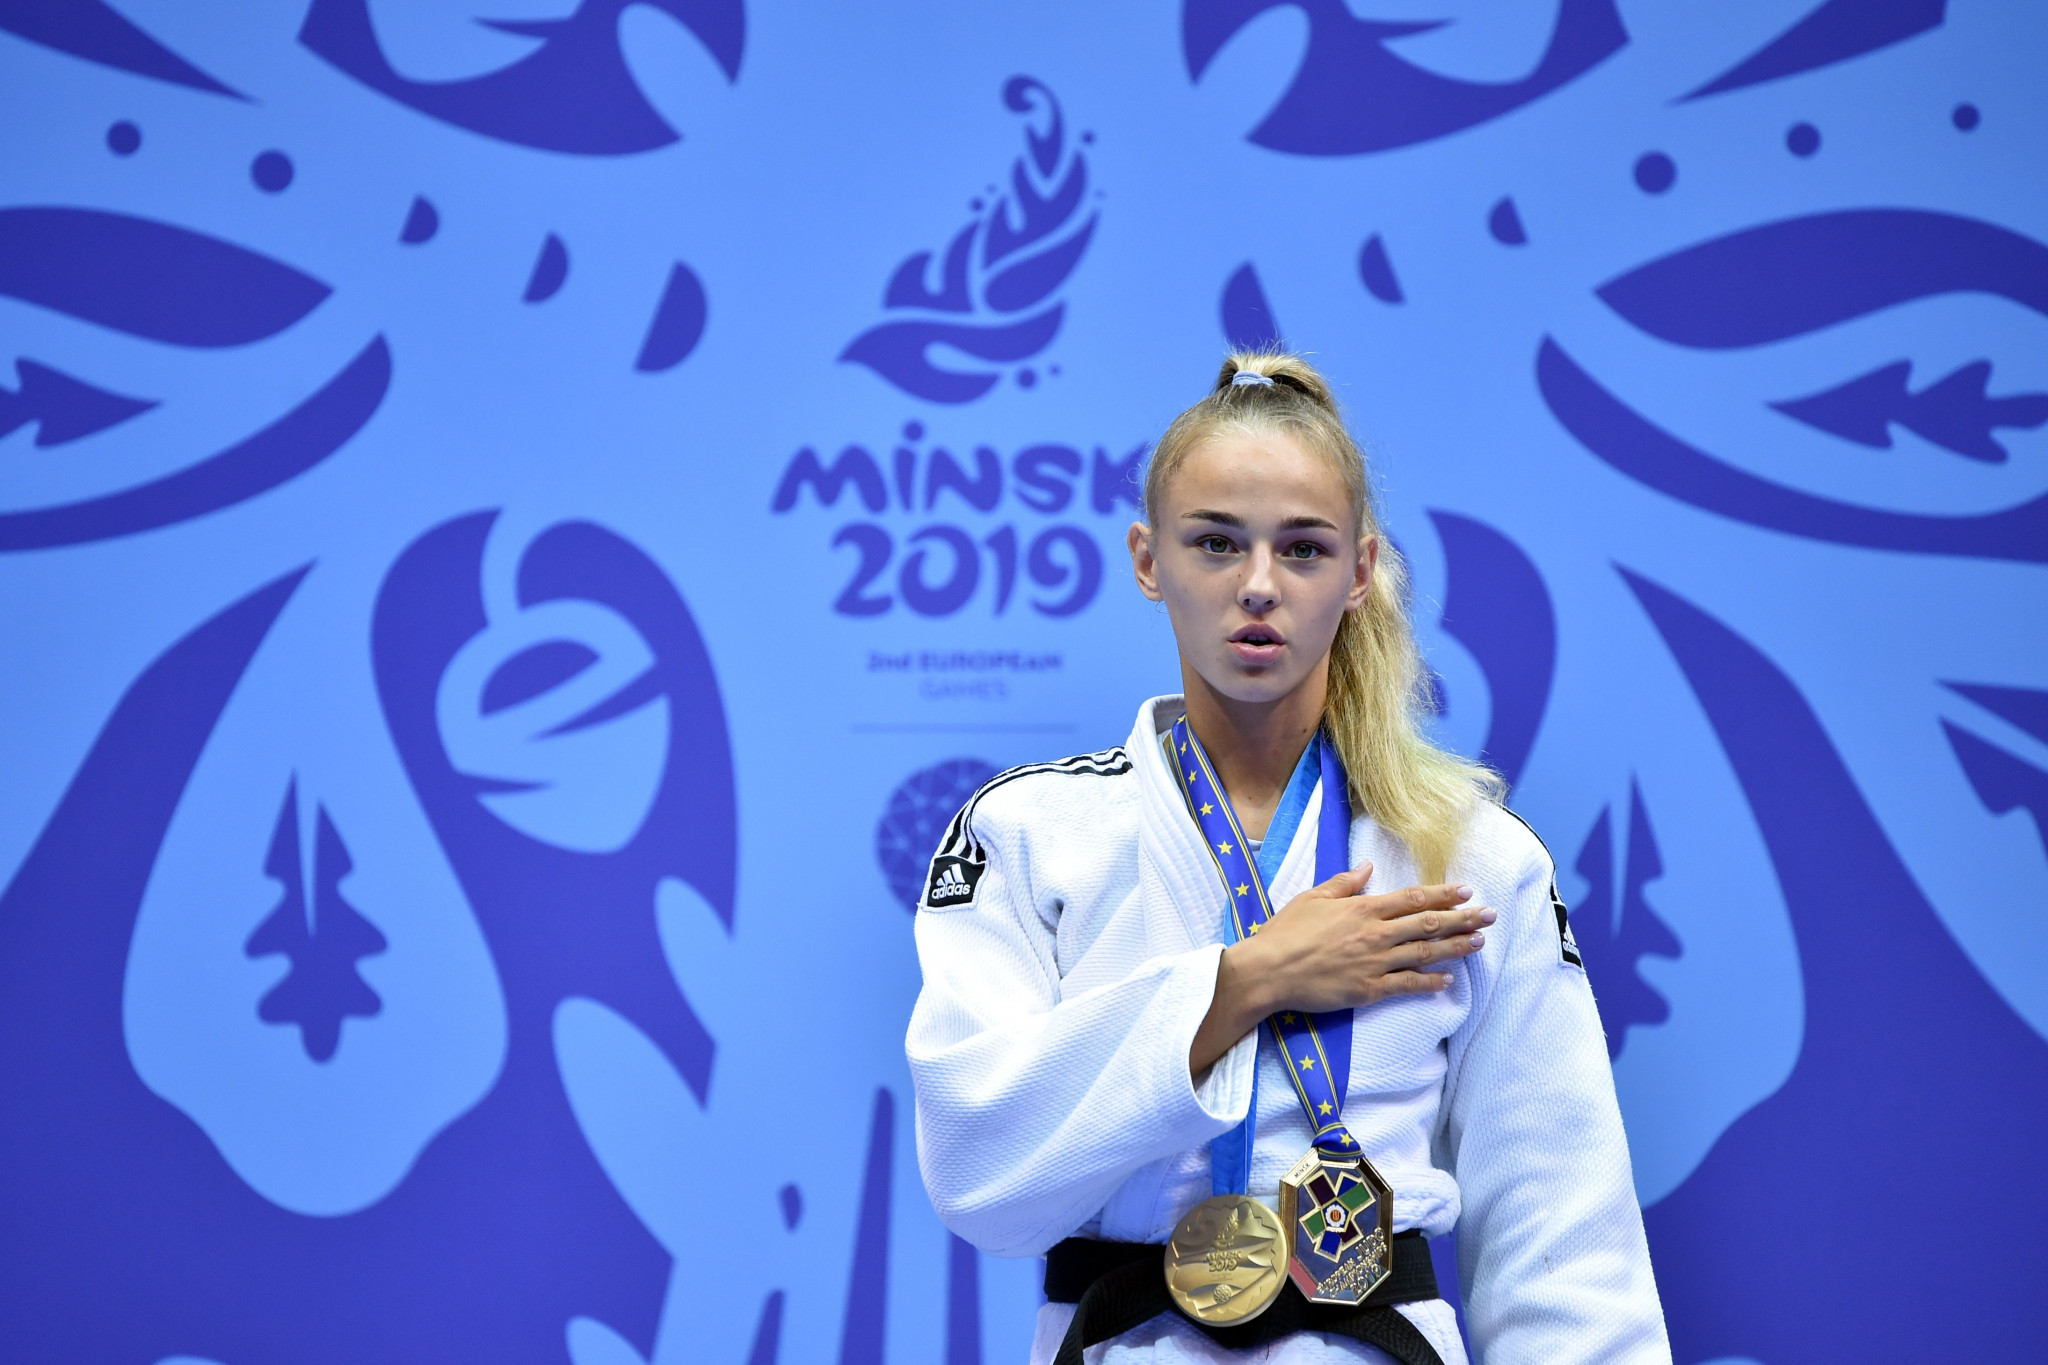 Bilodid beats rival Dolgova and Kosovo win two golds on day one of judo at Minsk 2019 European Games